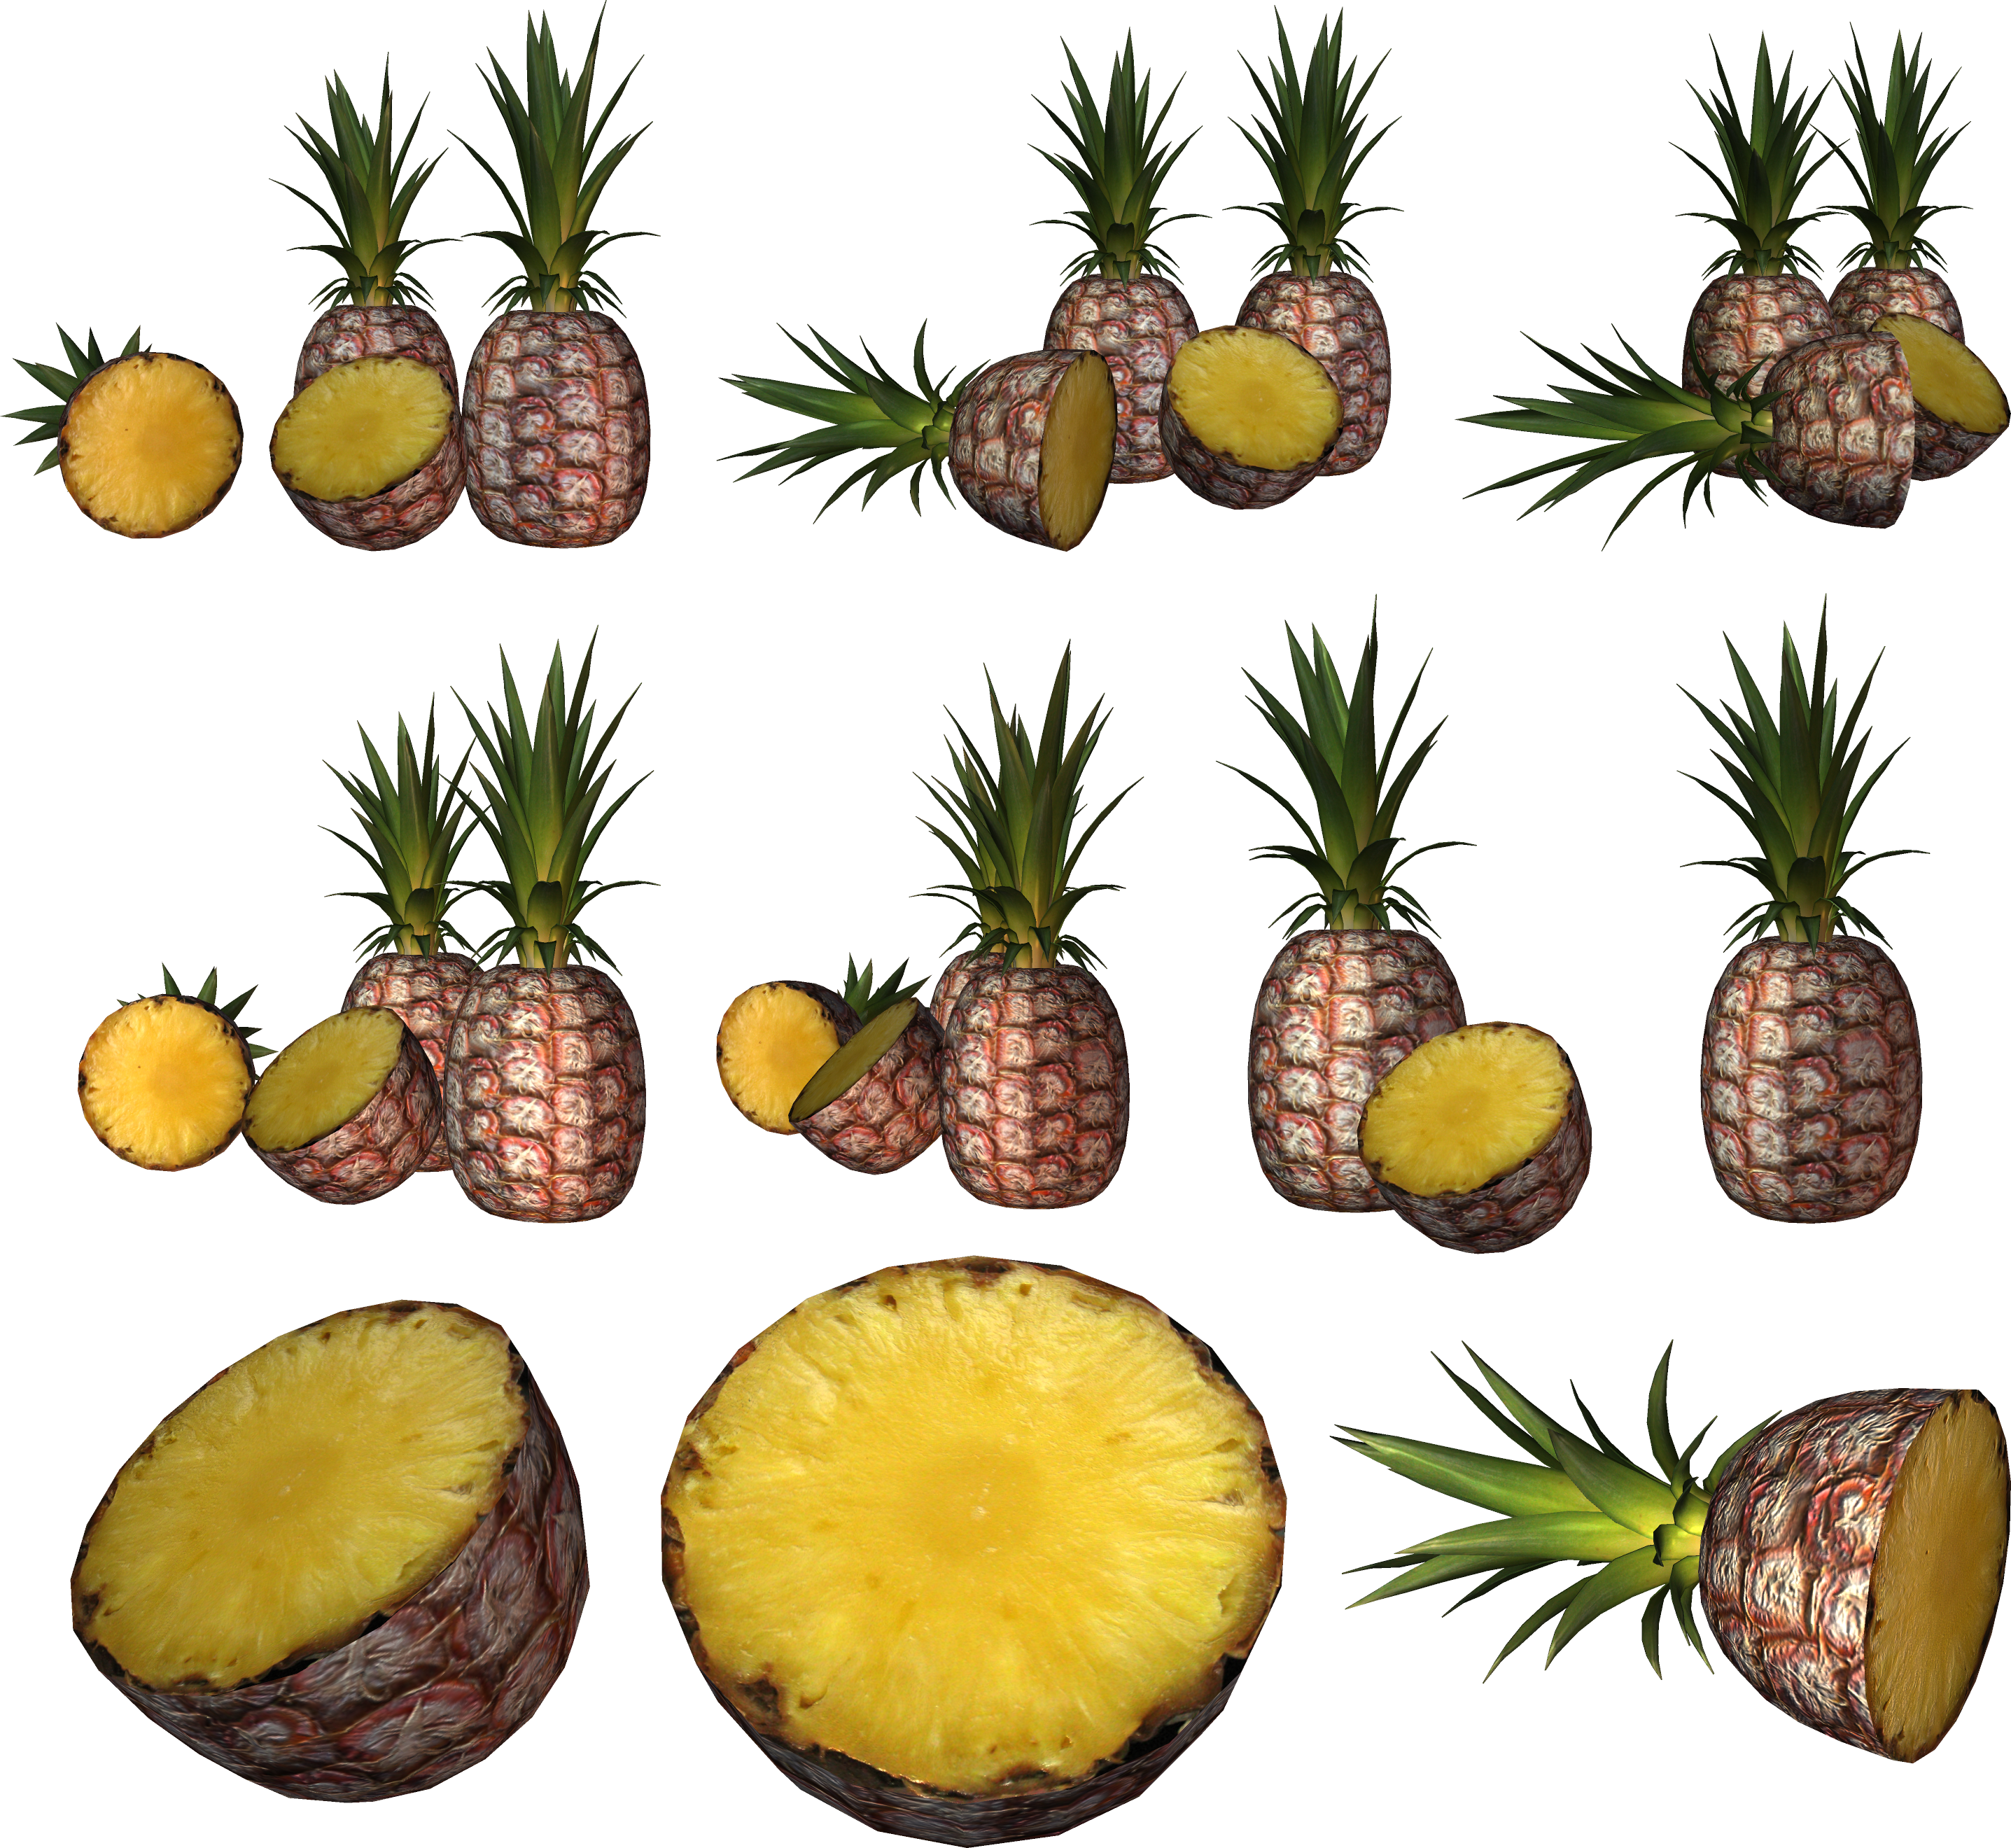 Png images free pictures. Pineapple clipart fruite